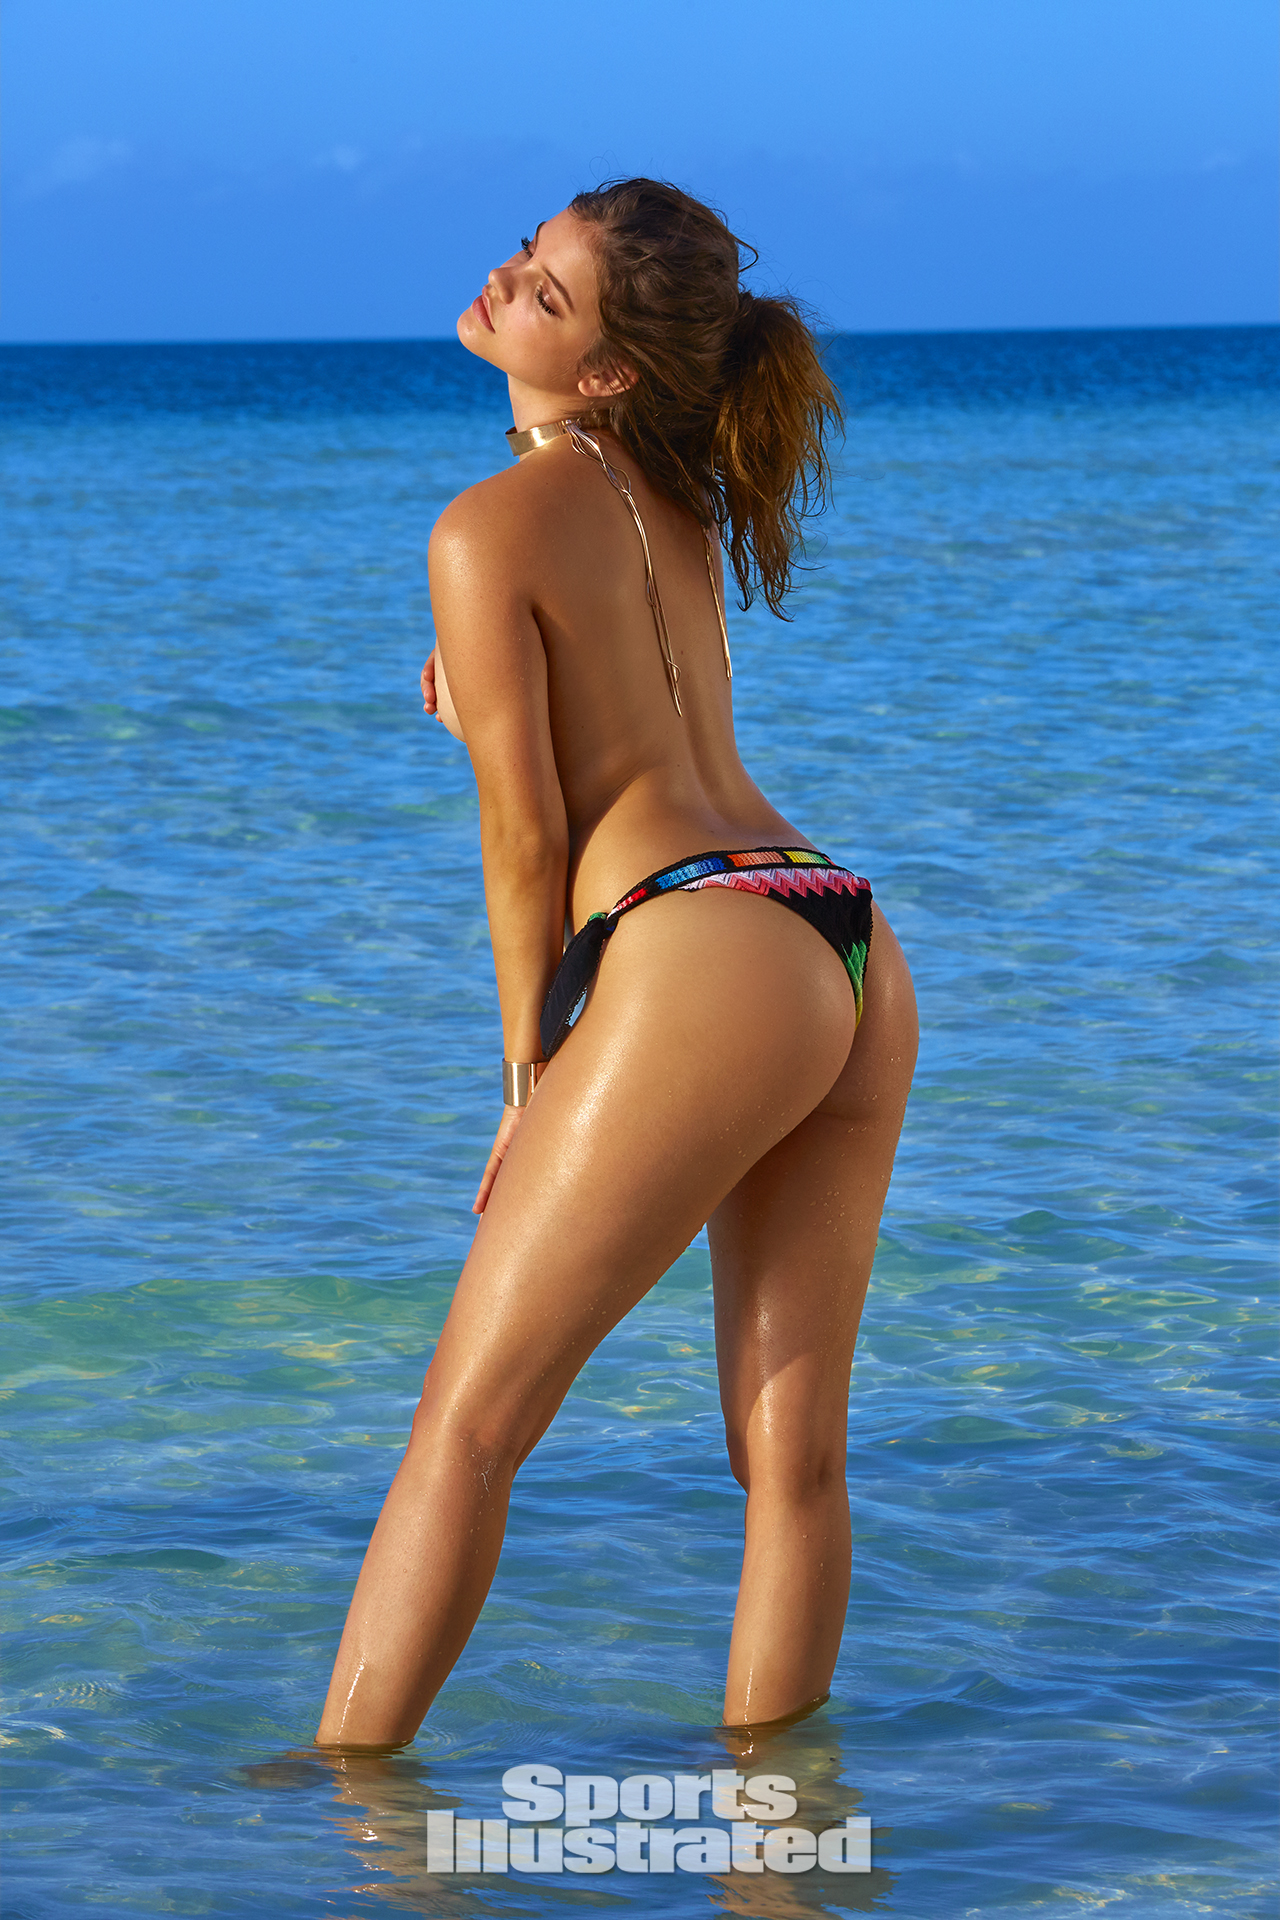 Barbara Palvin was photographed by James Macari in Turks & Caicos. Swimsuit by Missoni.